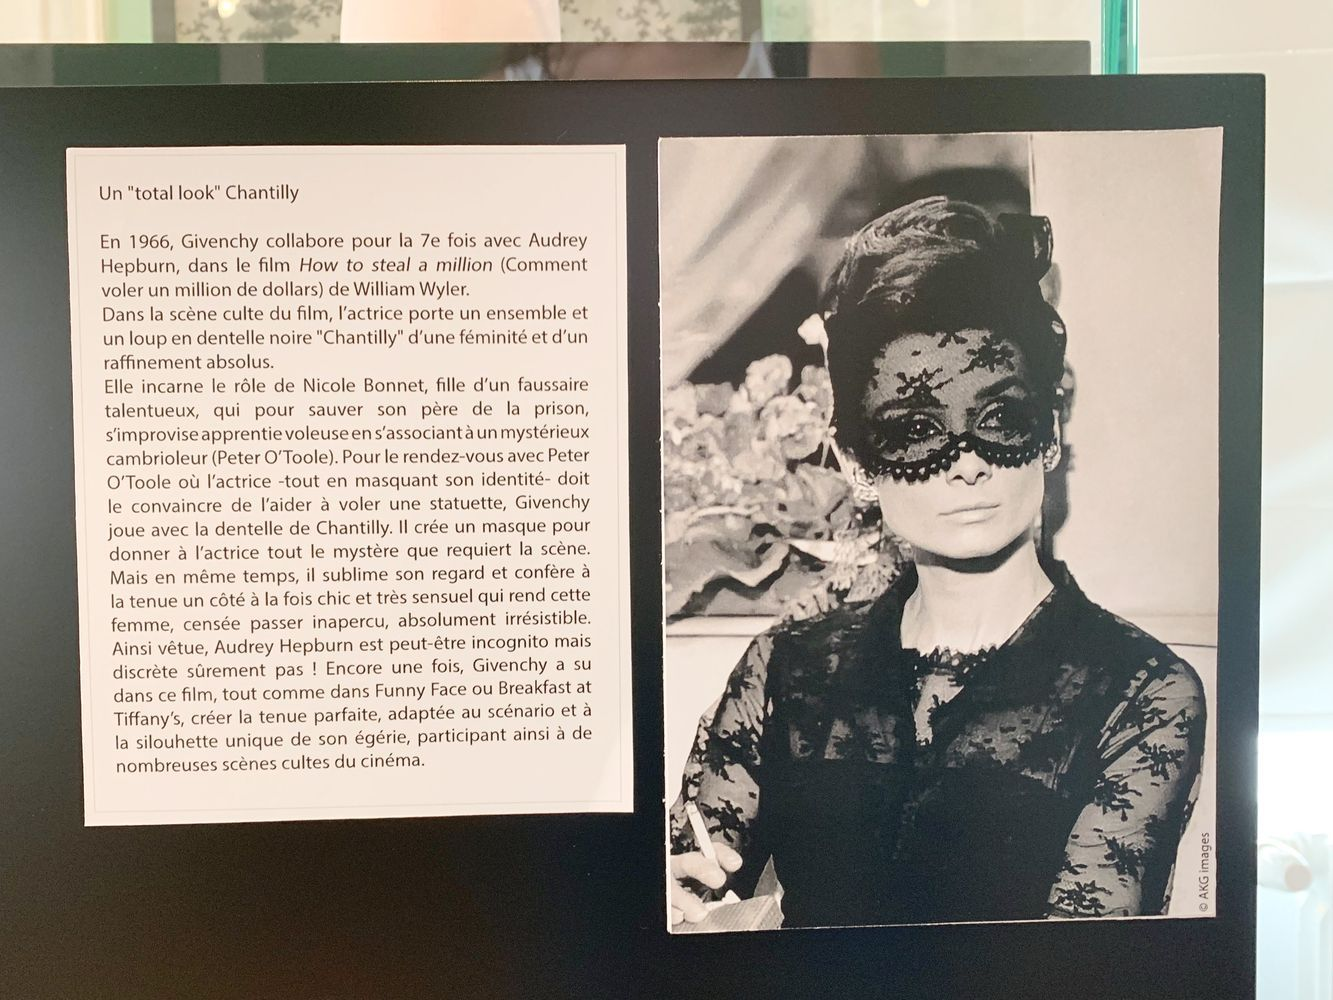 Audrey Hepburn, Givenchy lace, Chantilly Lace Museum, France